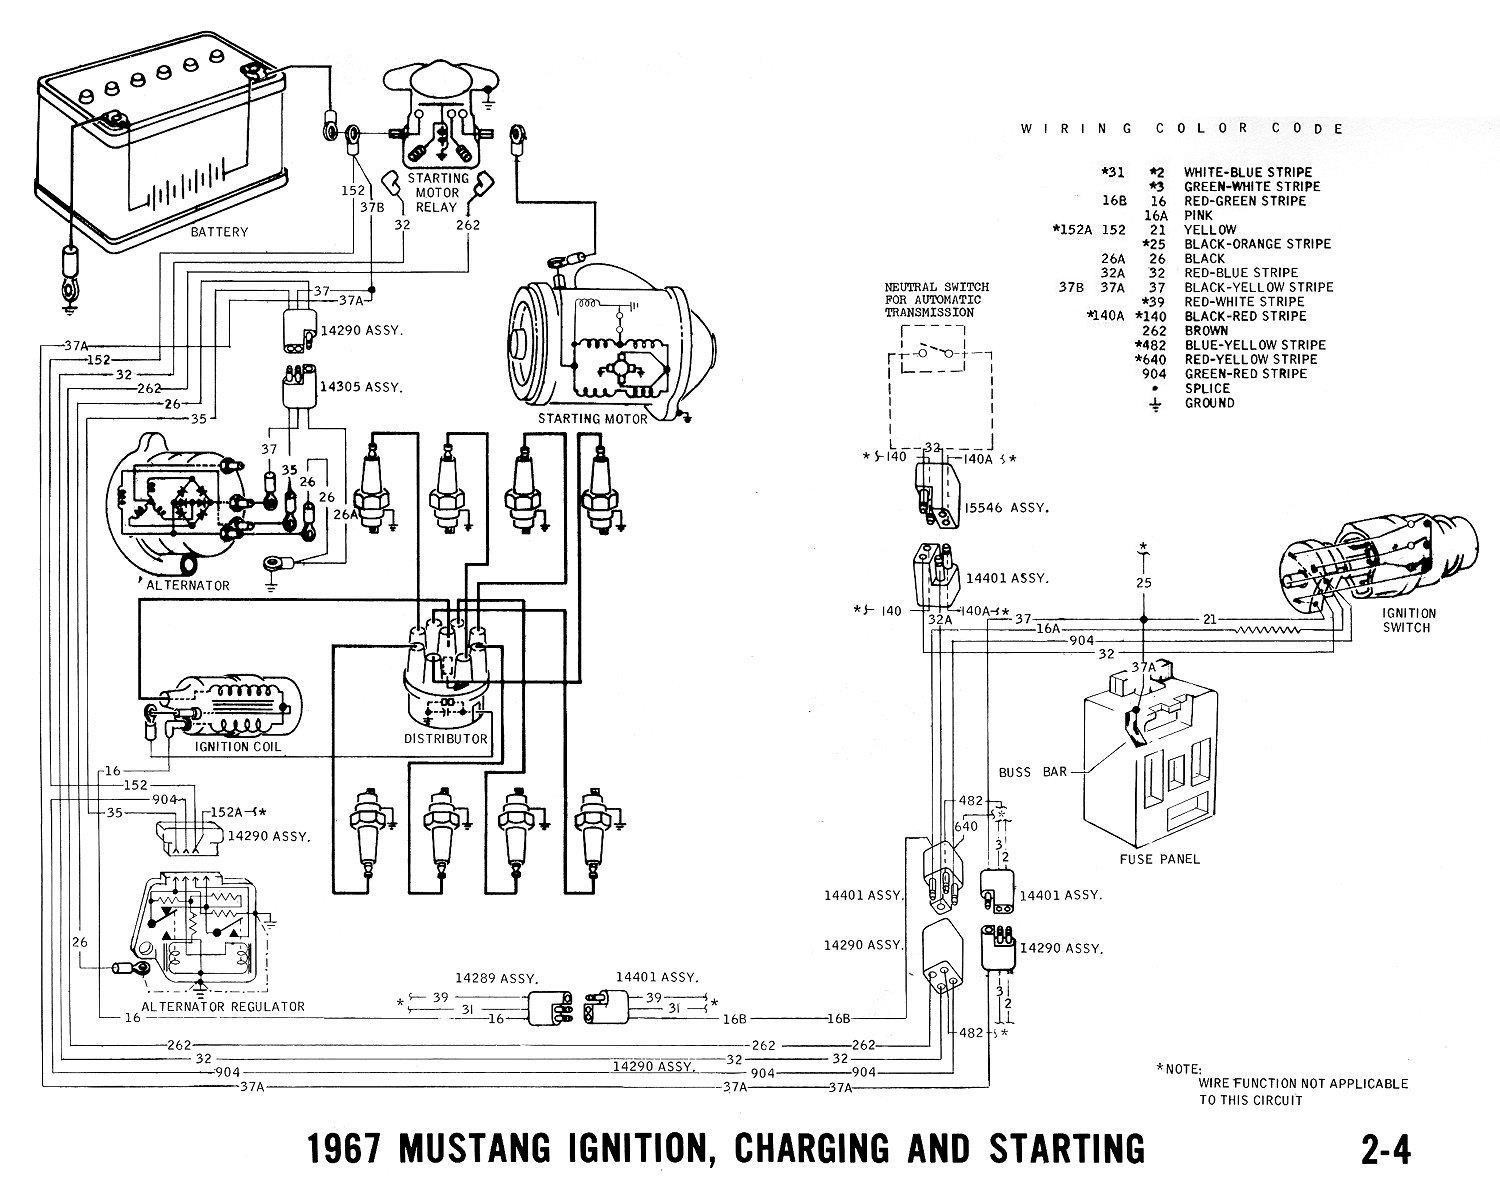 1971 mustang ignition switch wiring diagram electrical wiring diagrams rh cytrus co